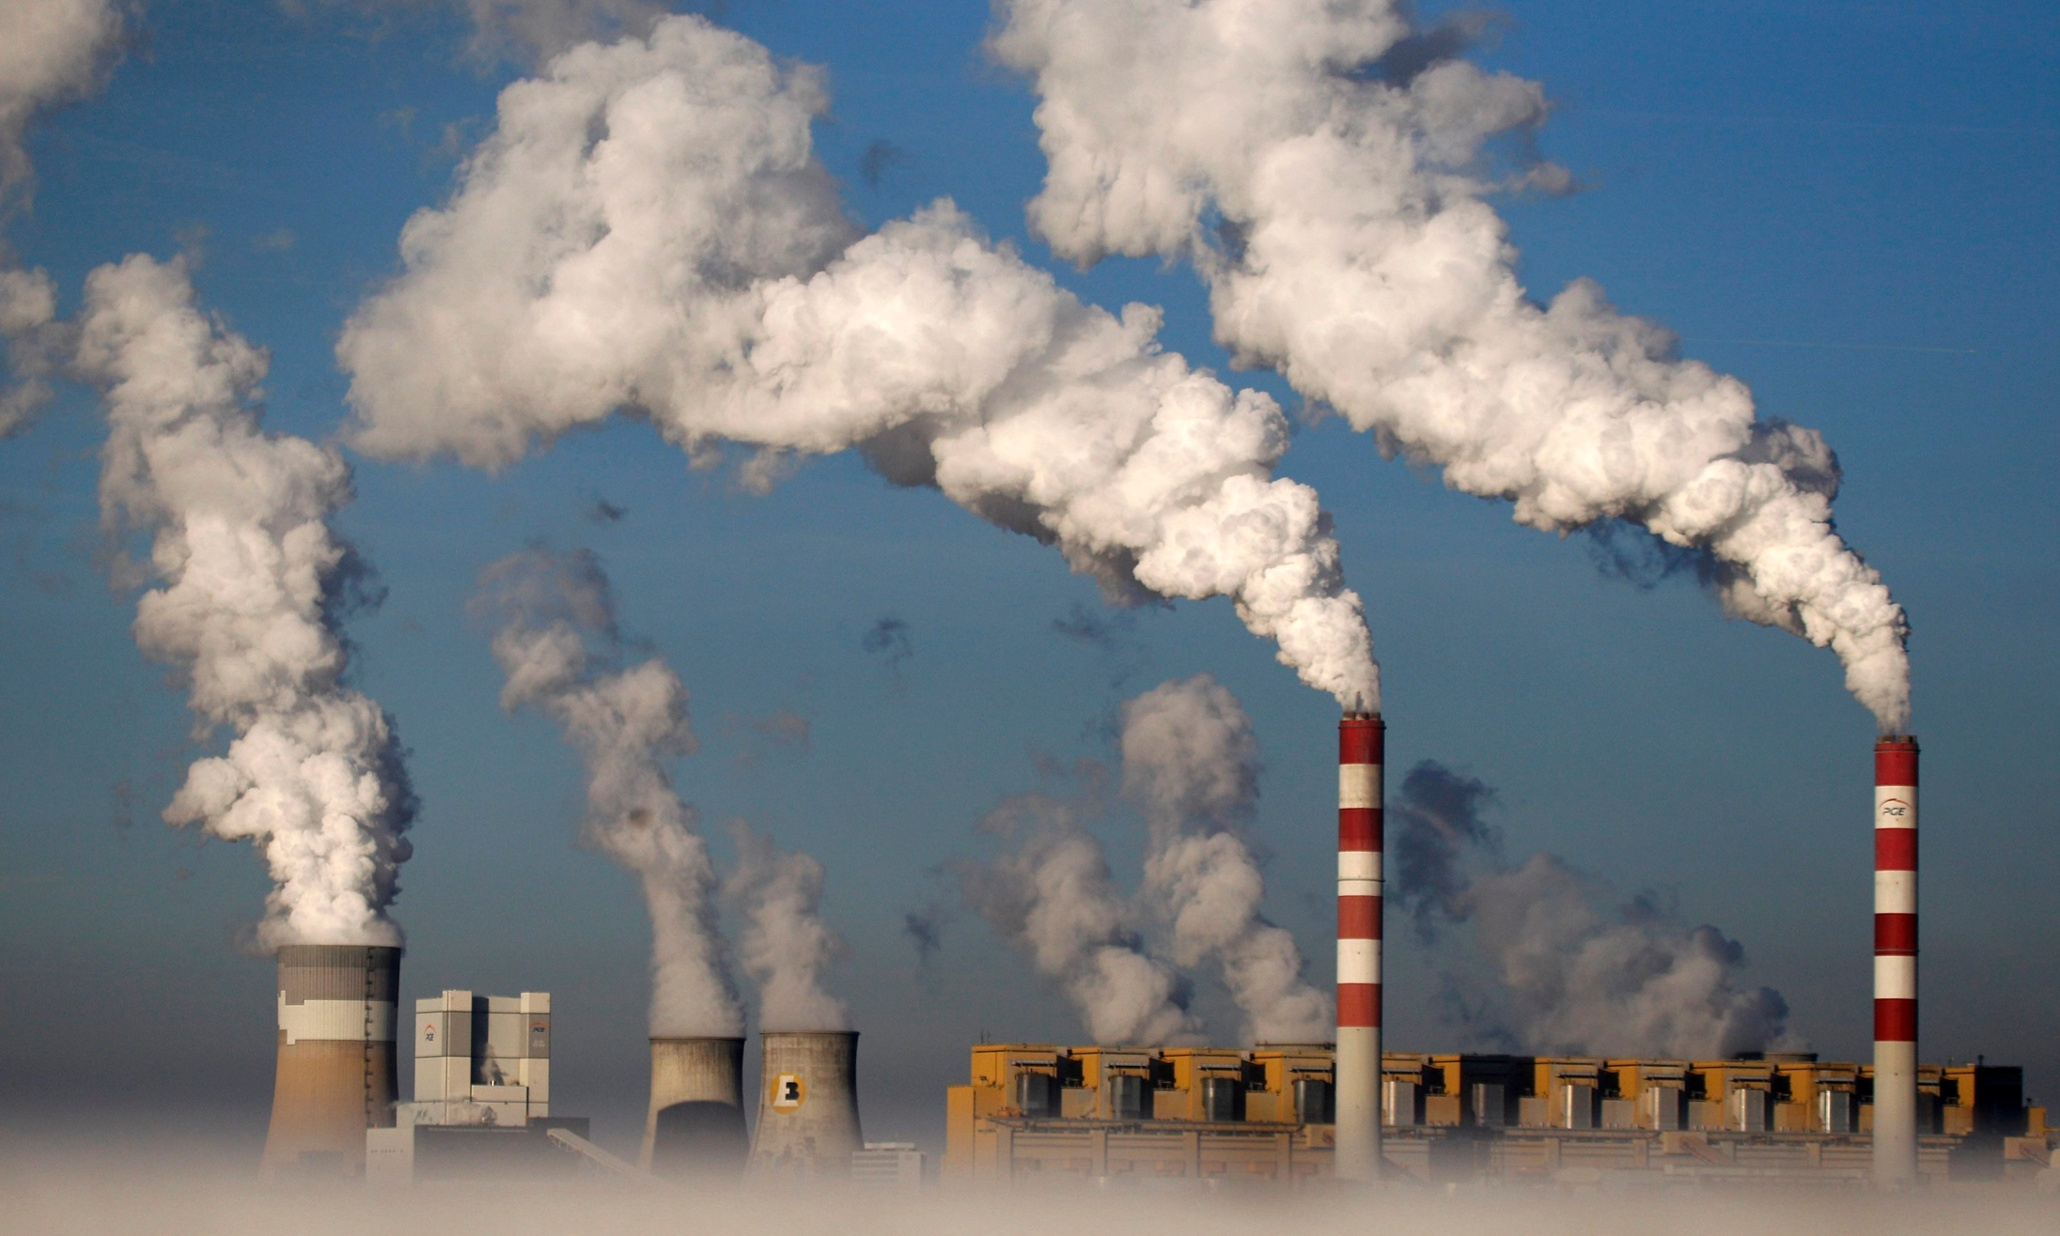 Climate commissioner hails 'strong signal' ahead of global Paris summit but key aspects of deal left vague or voluntary